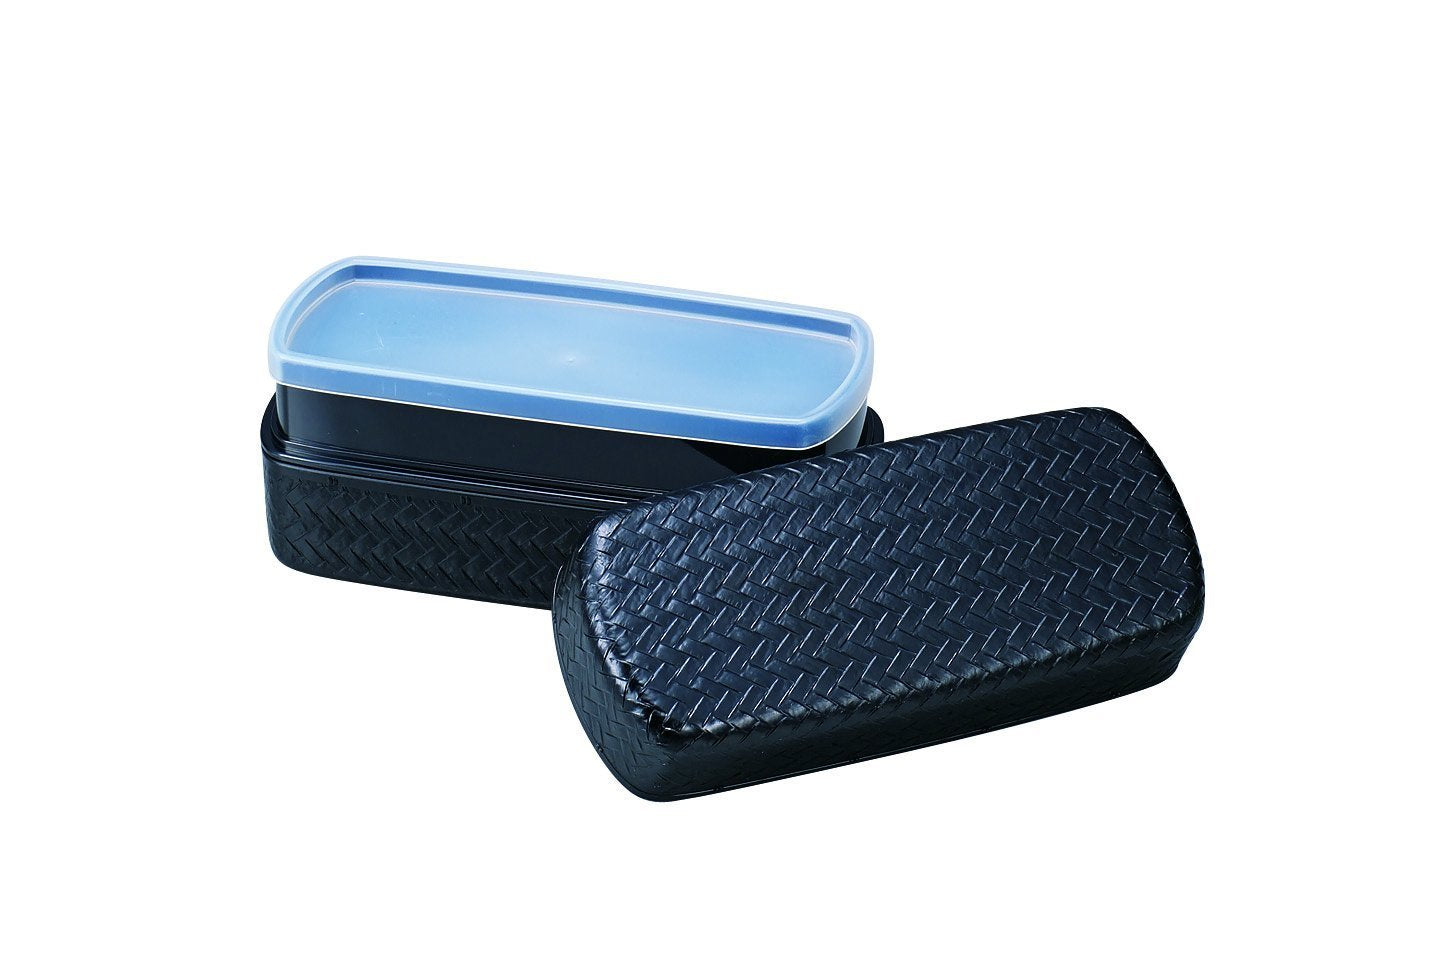 Ajiro Bento Box 950ml Black by Hakoya - Bento&con the Bento Boxes specialist from Kyoto